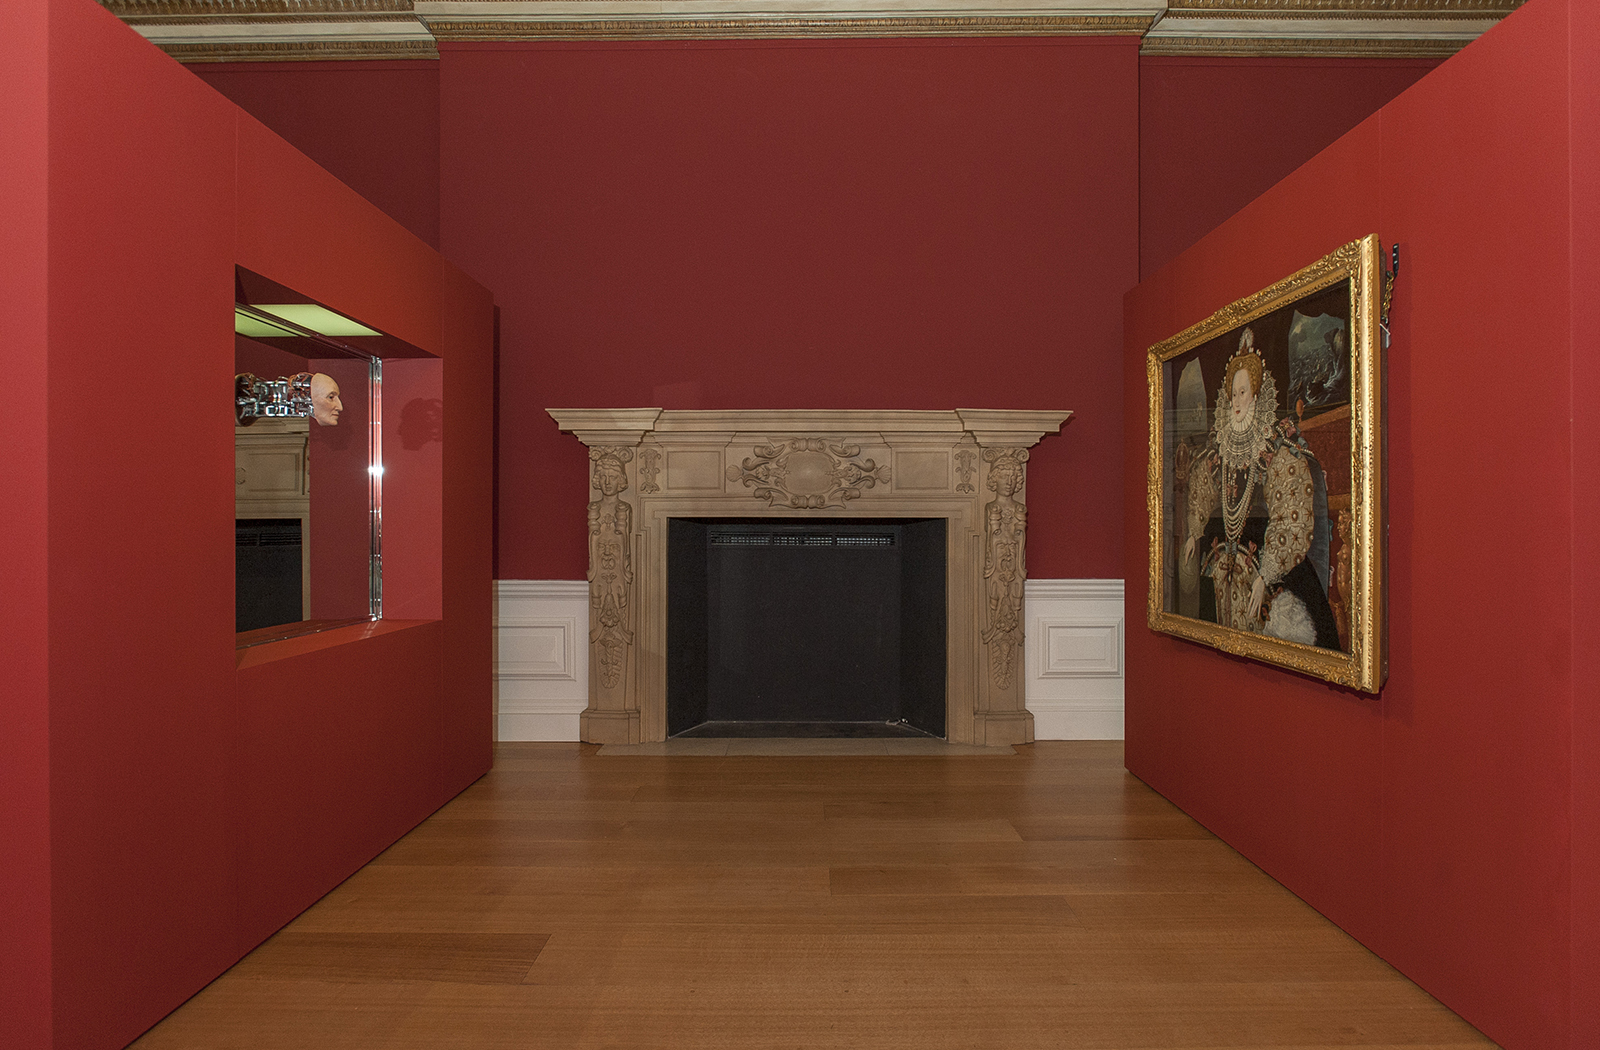 Installation Shots of Mat Collishaw's new commission in the Queen's House, Queen's Presence Chamber.